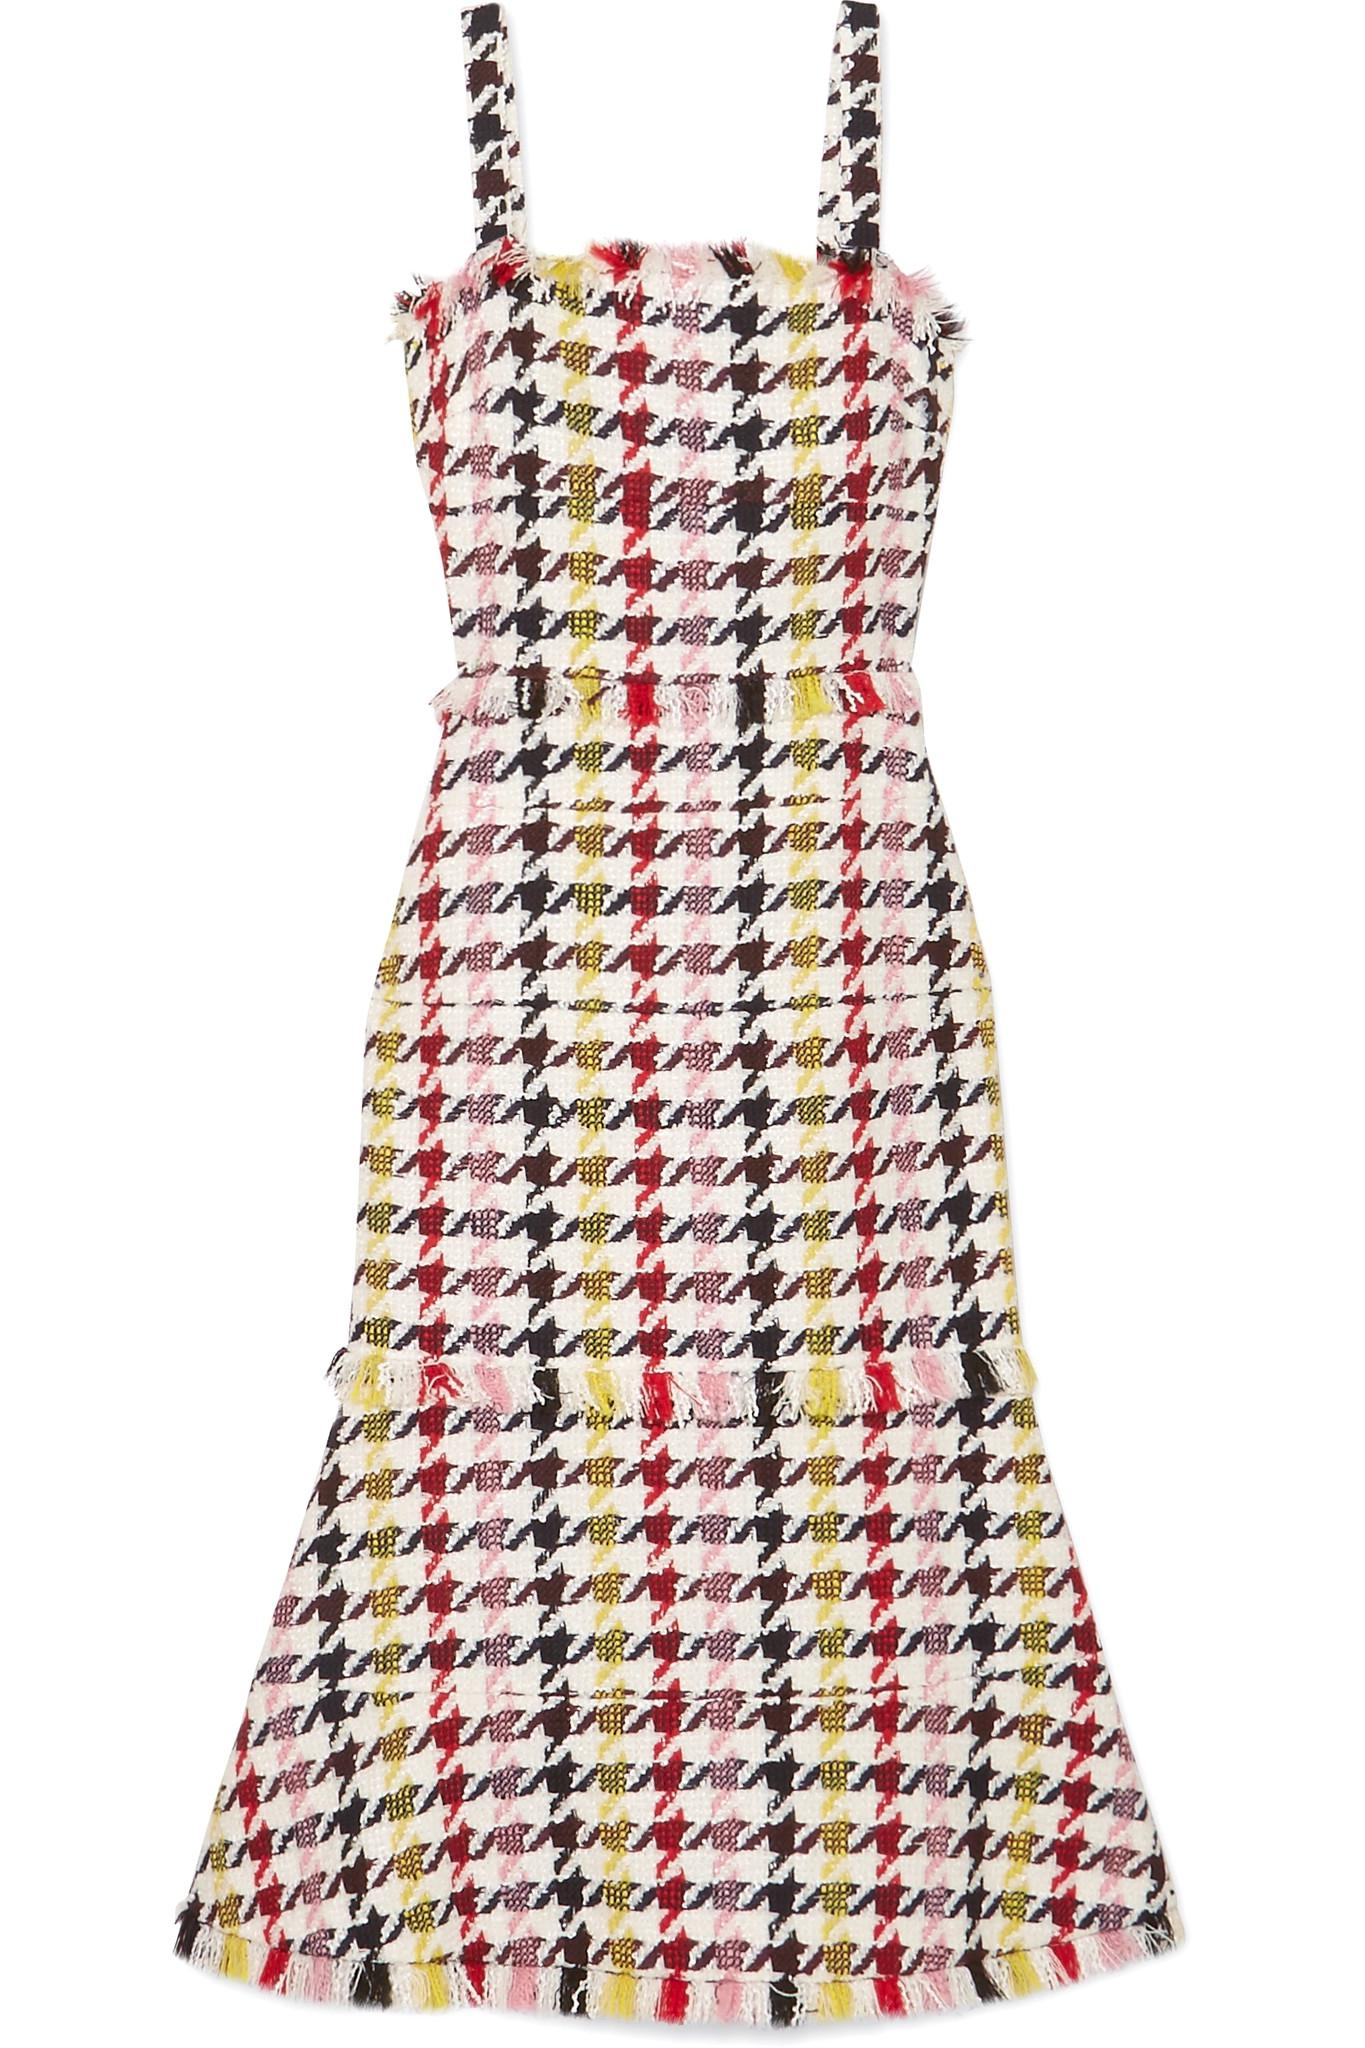 Free Shipping Really Fringed Houndstooth Wool-blend Tweed Dress - Red Oscar De La Renta Eastbay Supply All Size Pay With Visa Cheap Price 2g5fqRkb